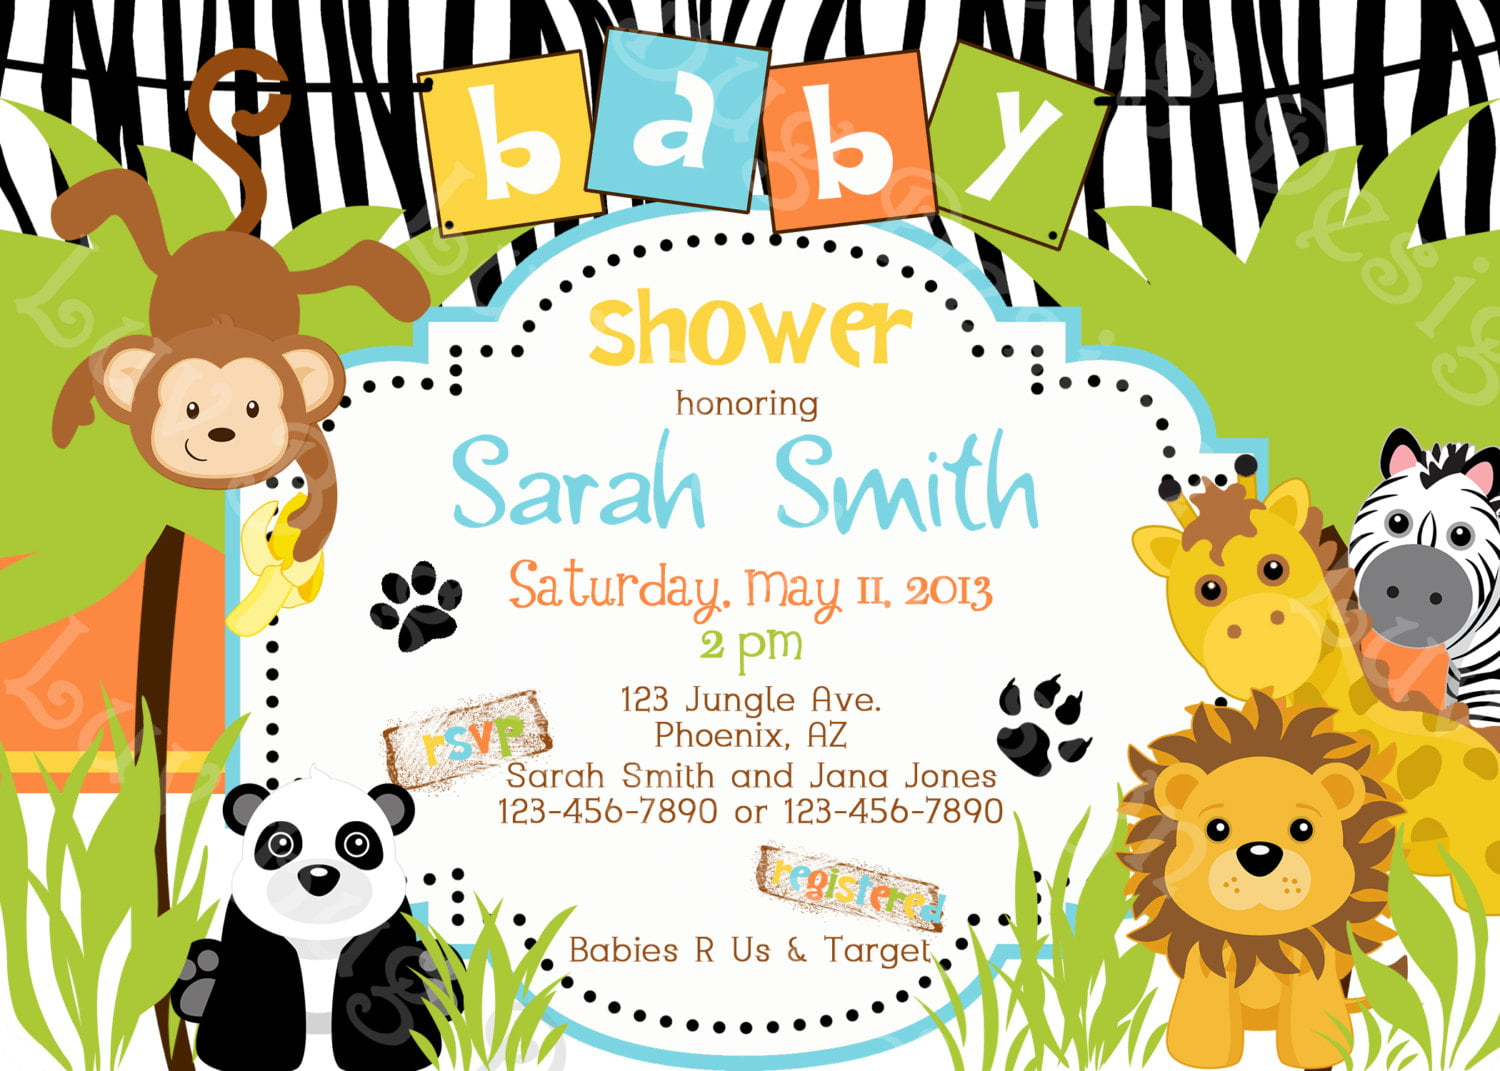 shower for limited budget baby shower for parents baby shower themes